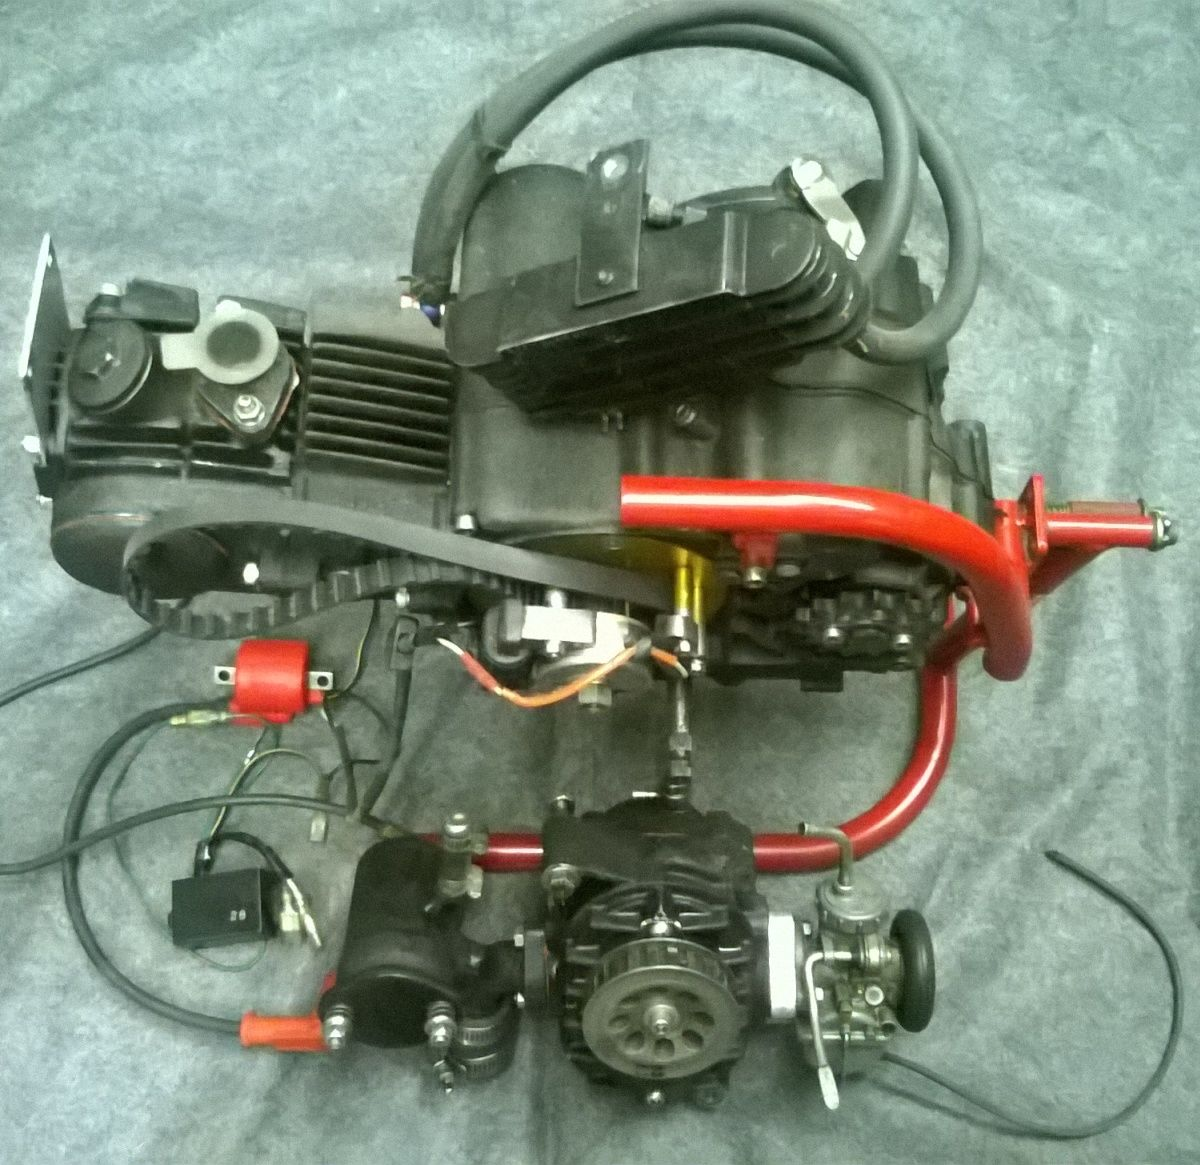 Supercharged engine - 50cc - 10hp - complete kit ready to run